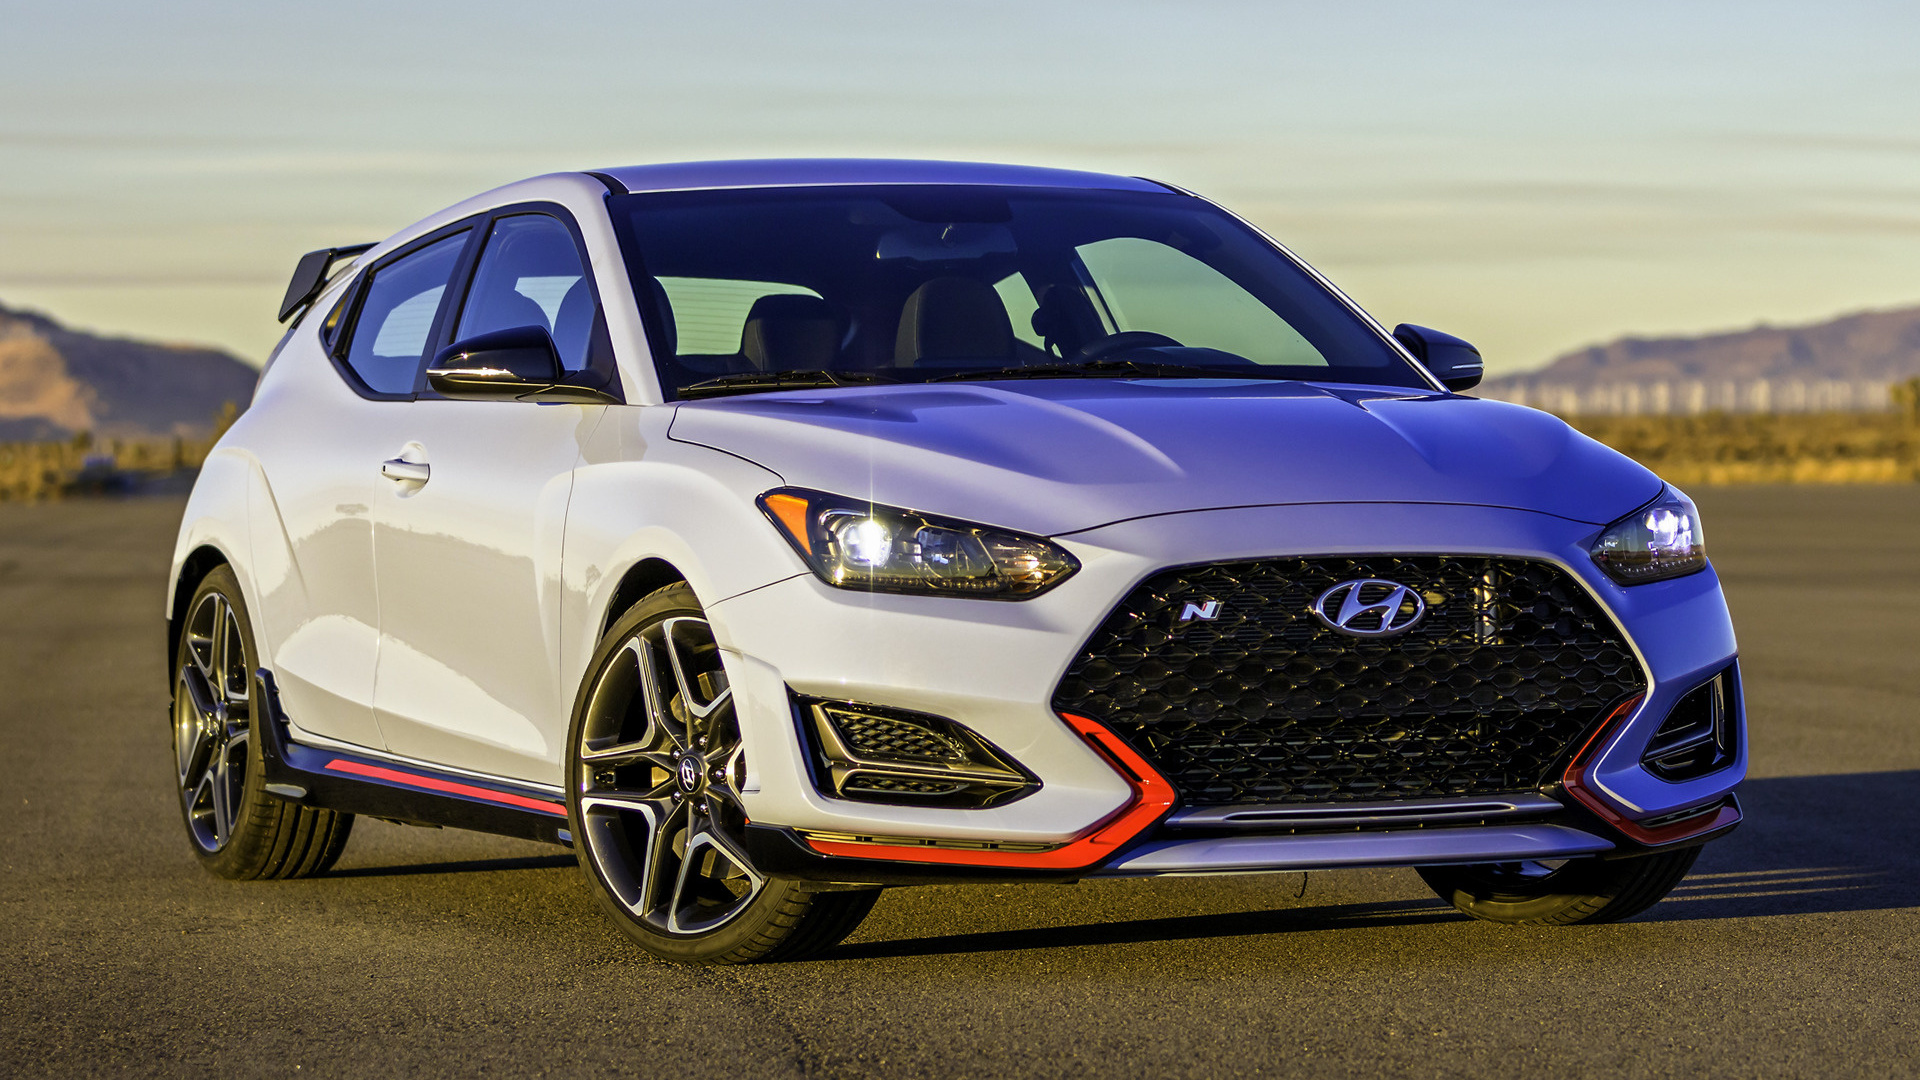 Hyundai Veloster Rally >> 2019 Hyundai Veloster N (US) - Wallpapers and HD Images ...